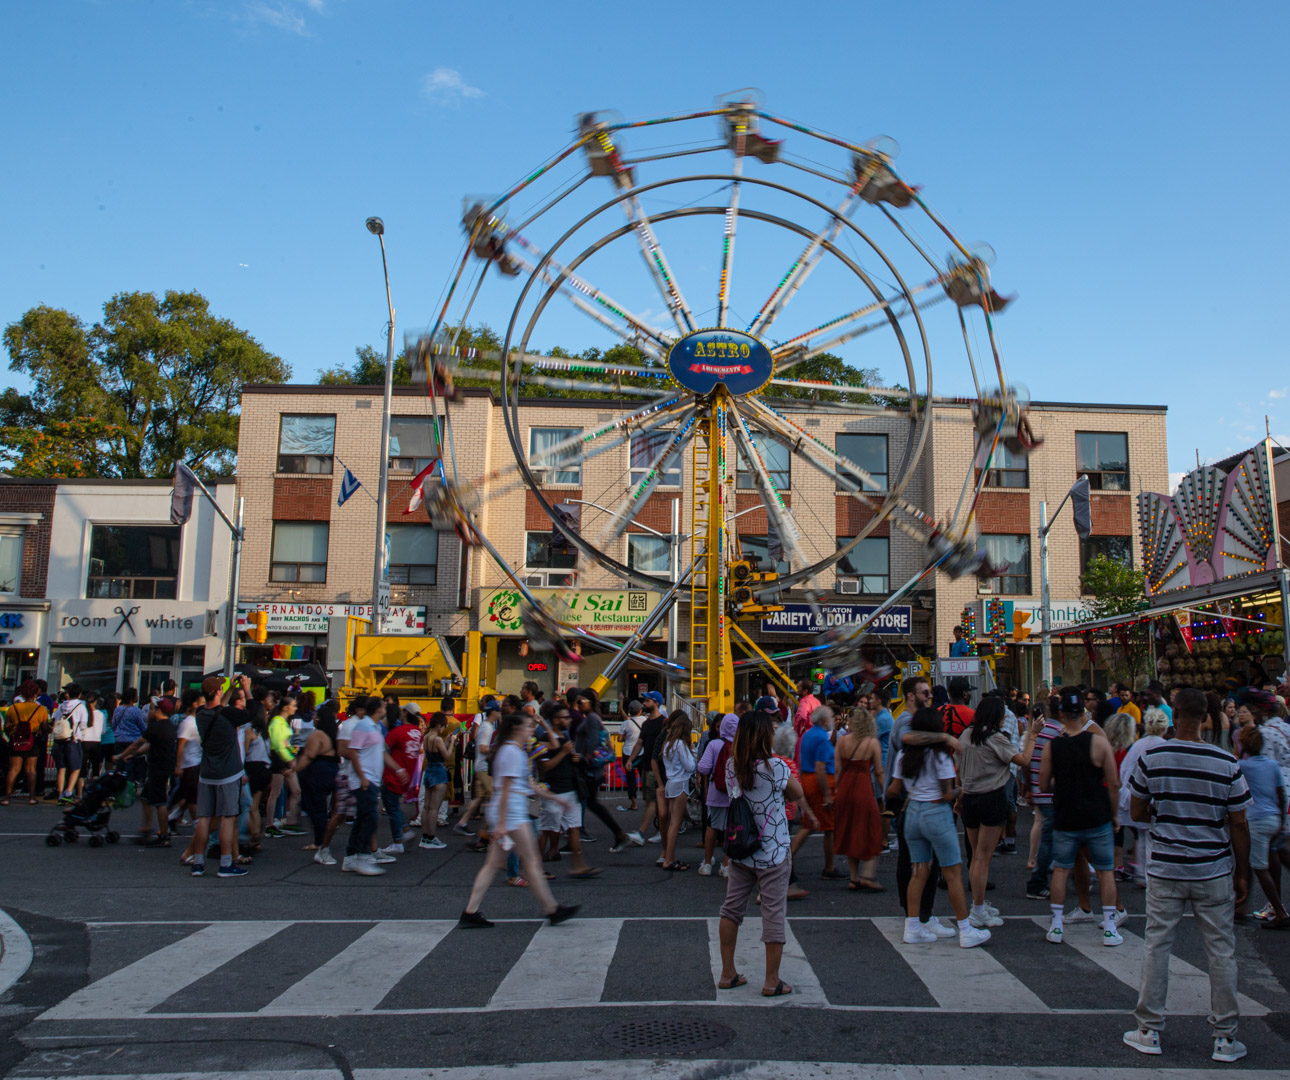 Sunday Evening at the Taste of The Danforth